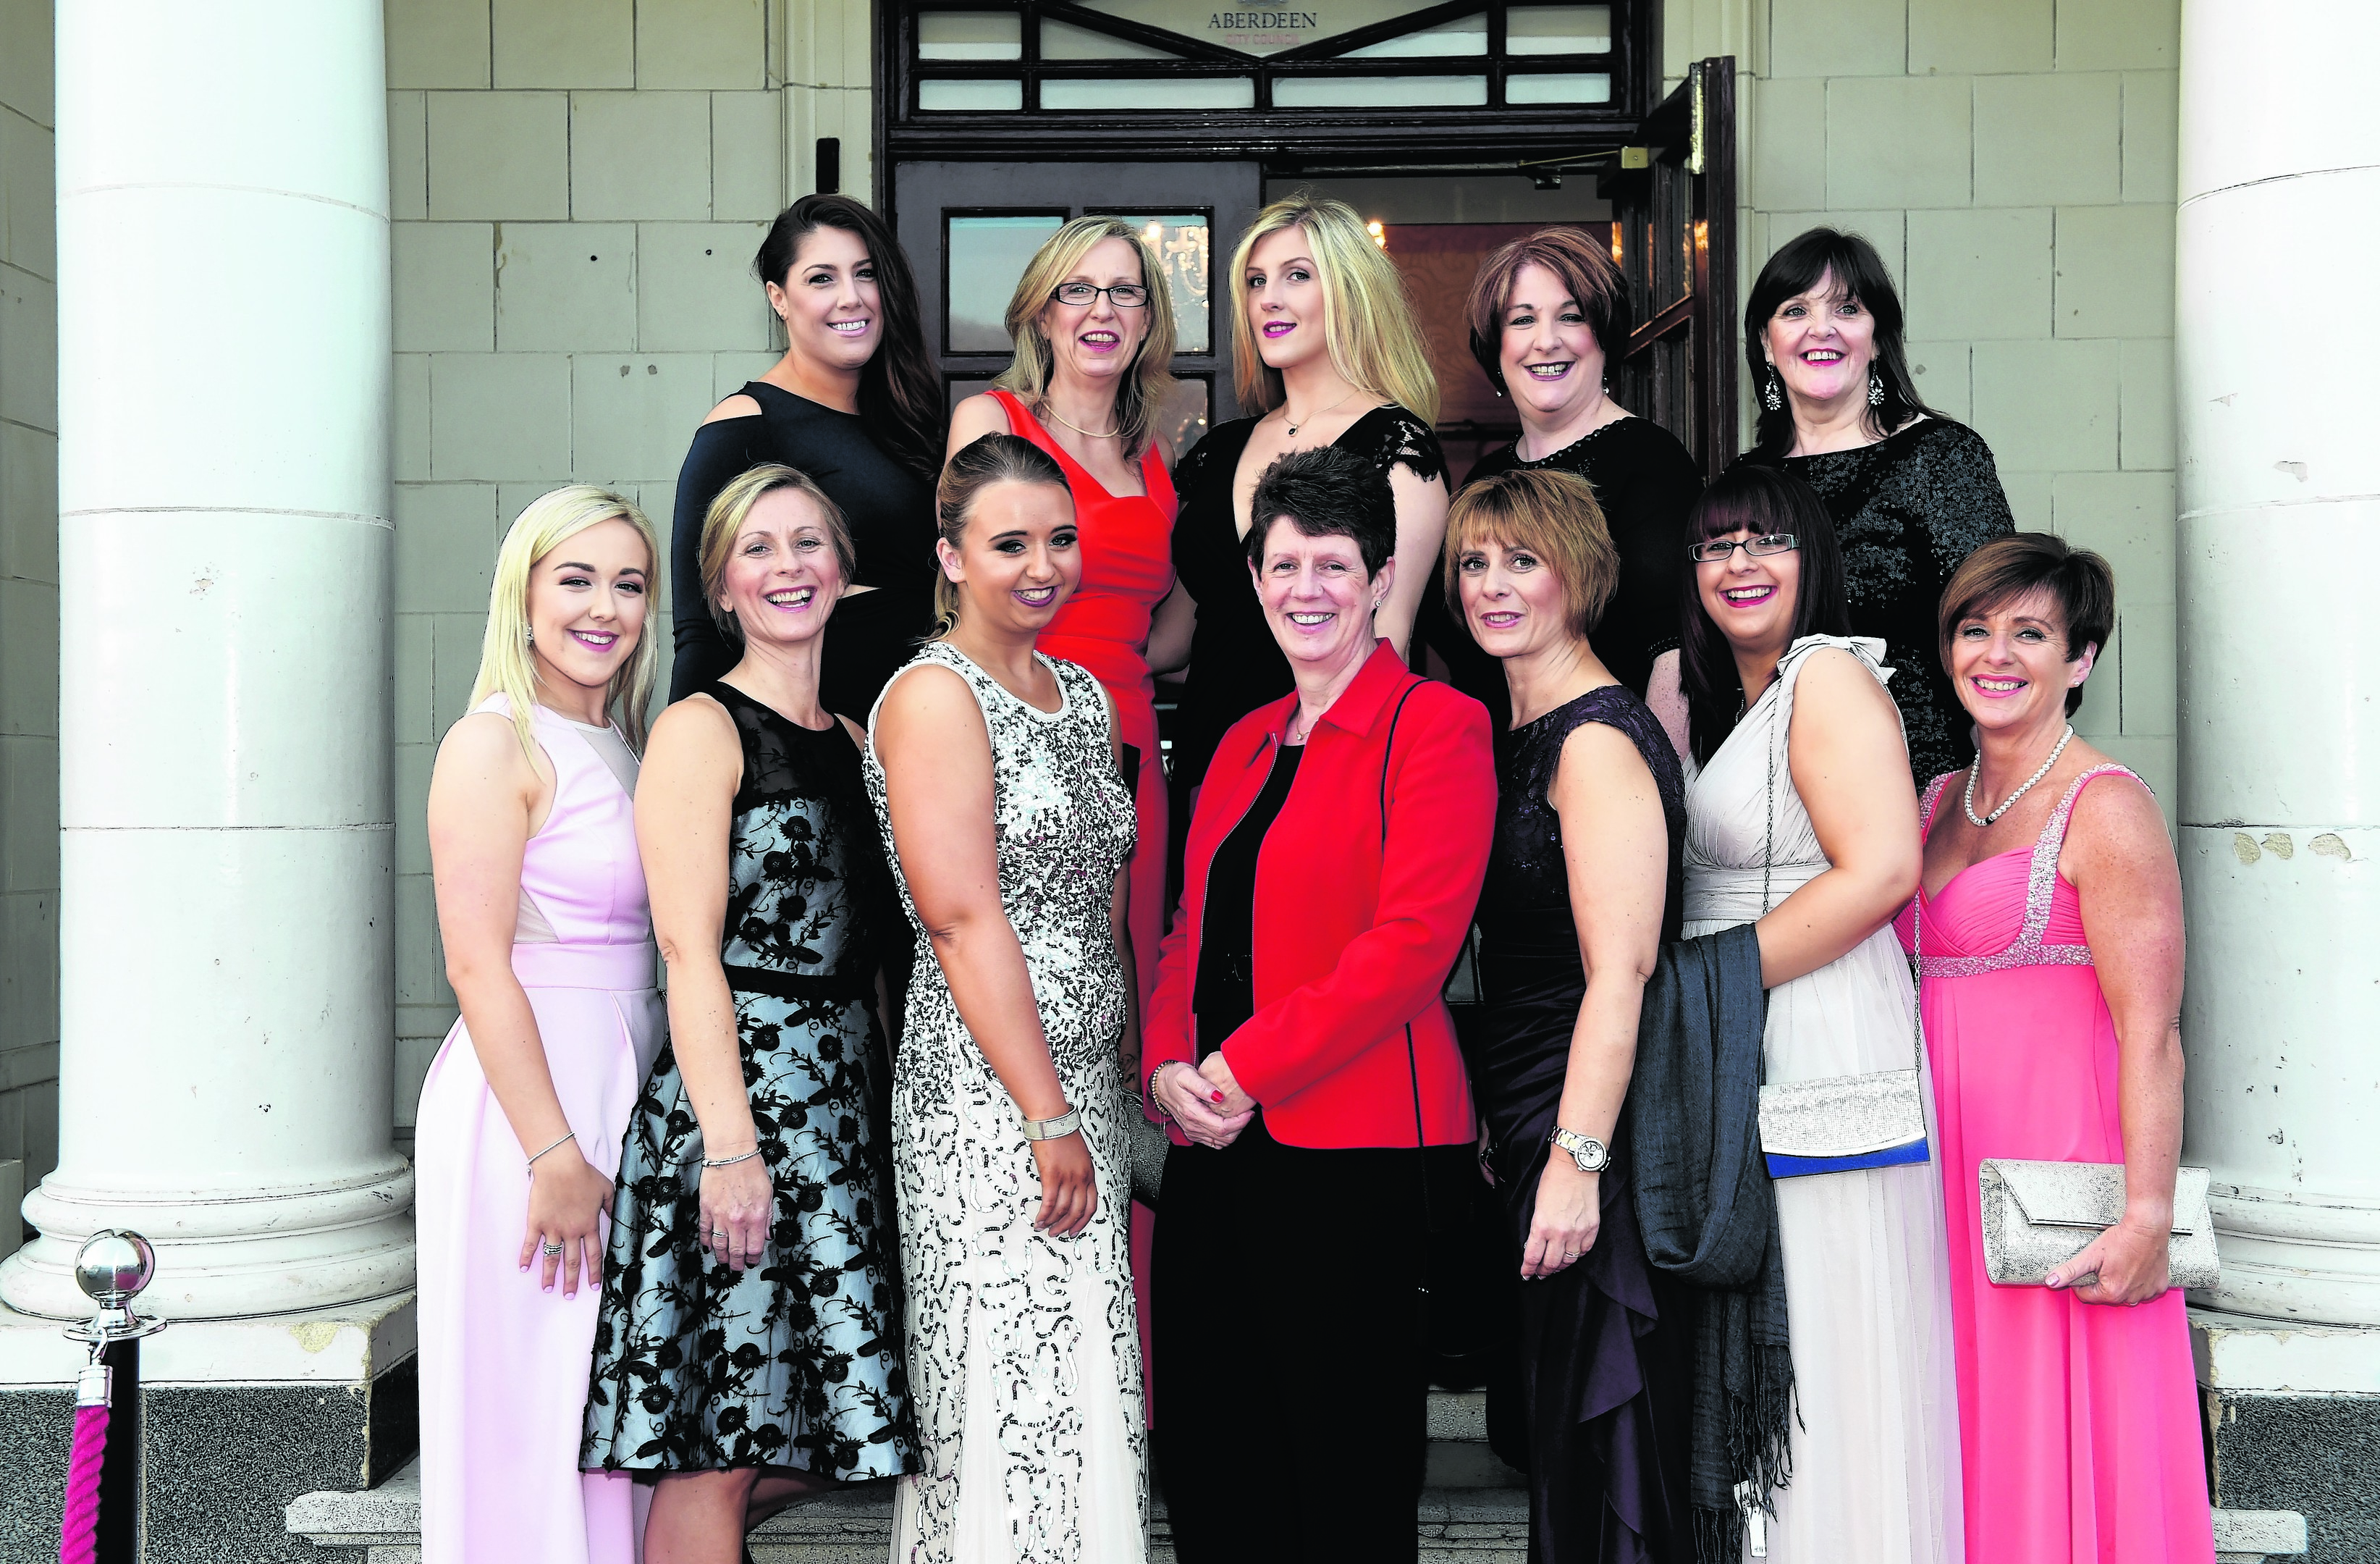 Back row: Amie Cummine, Susan and Fiona Barclay, Jill Campbell and Maggie Mackenzie. Front row: Rebecca Milne, Lorraine Burns, Megan Gall, Anna Armstrong, Shona Gall, Hannah Gall and Karen Fyvie